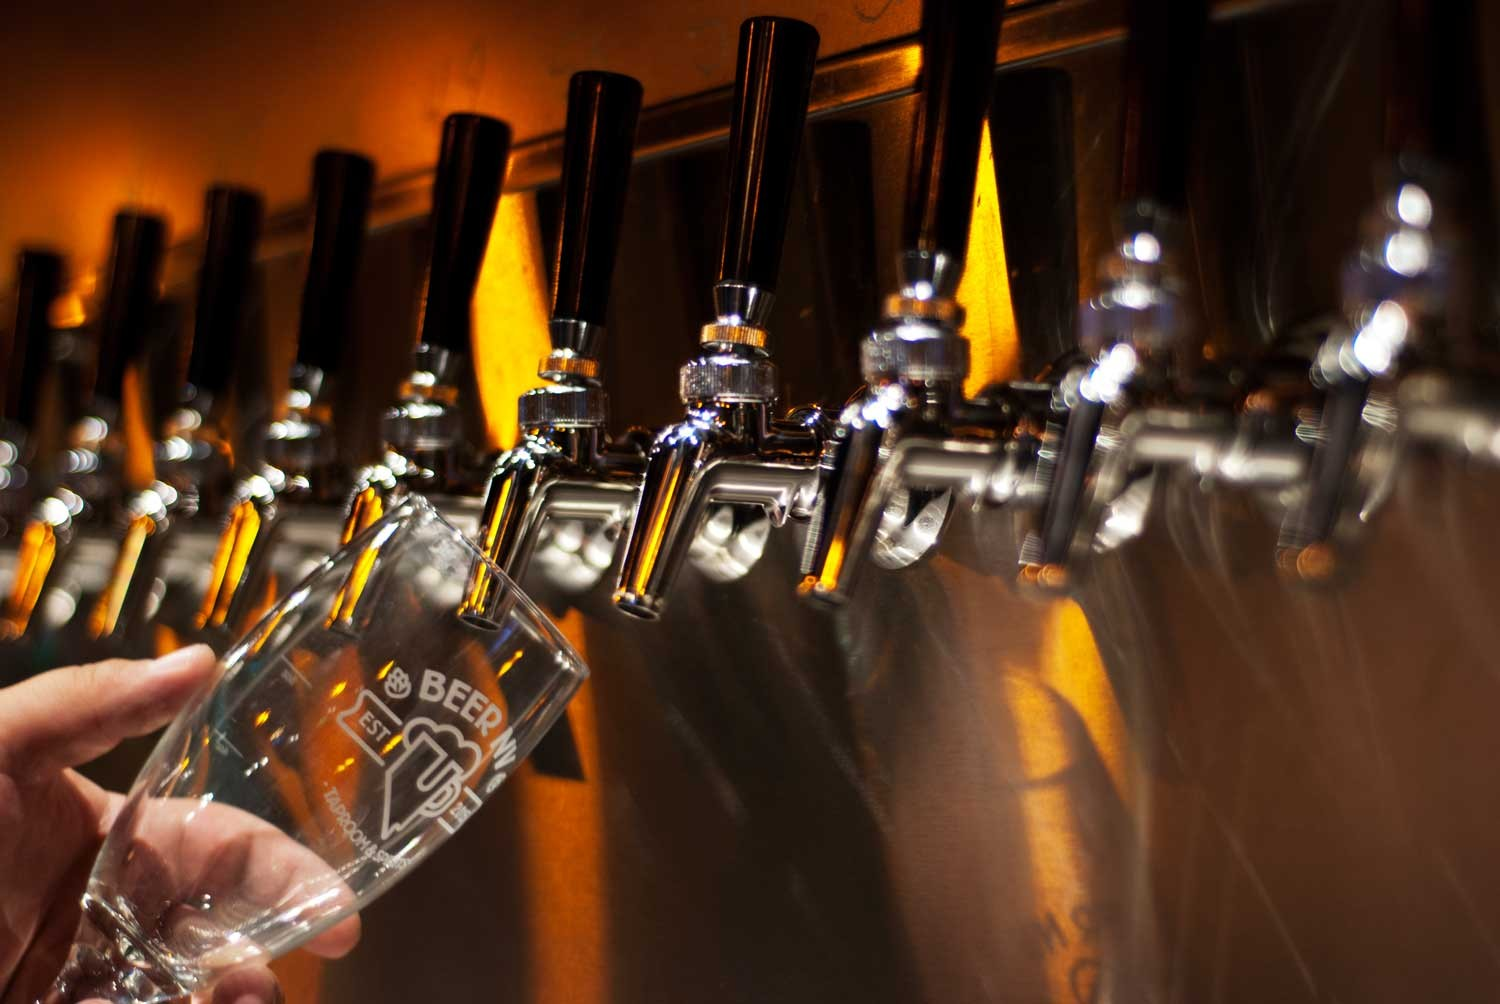 60+ Craft Beers On Tap From All Over The World | Beer NVBeerNV